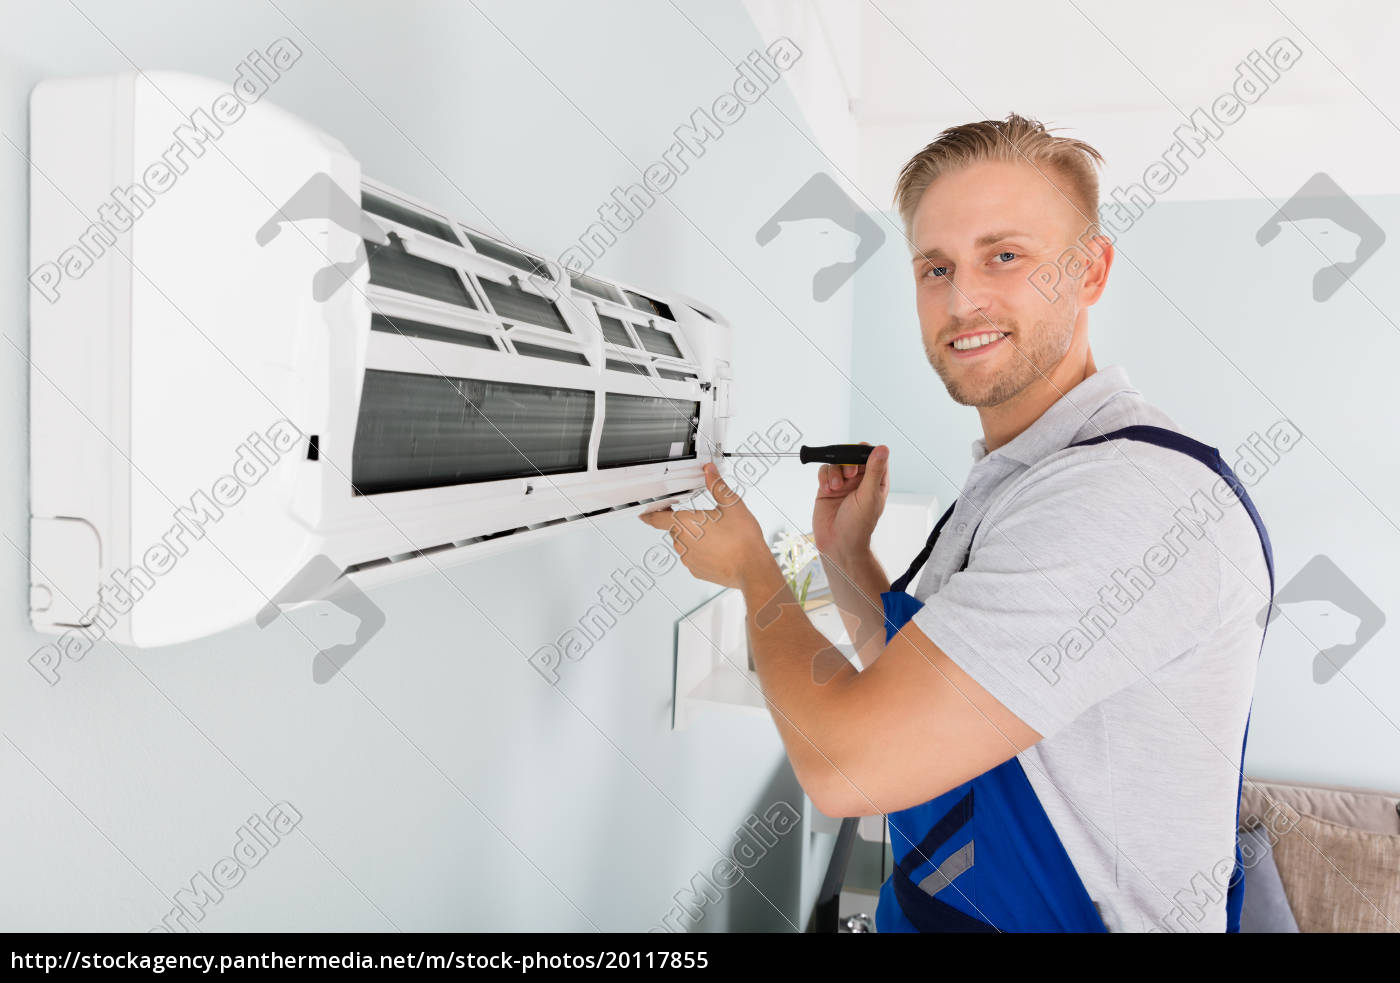 technician, fixing, air, conditioner - 20117855